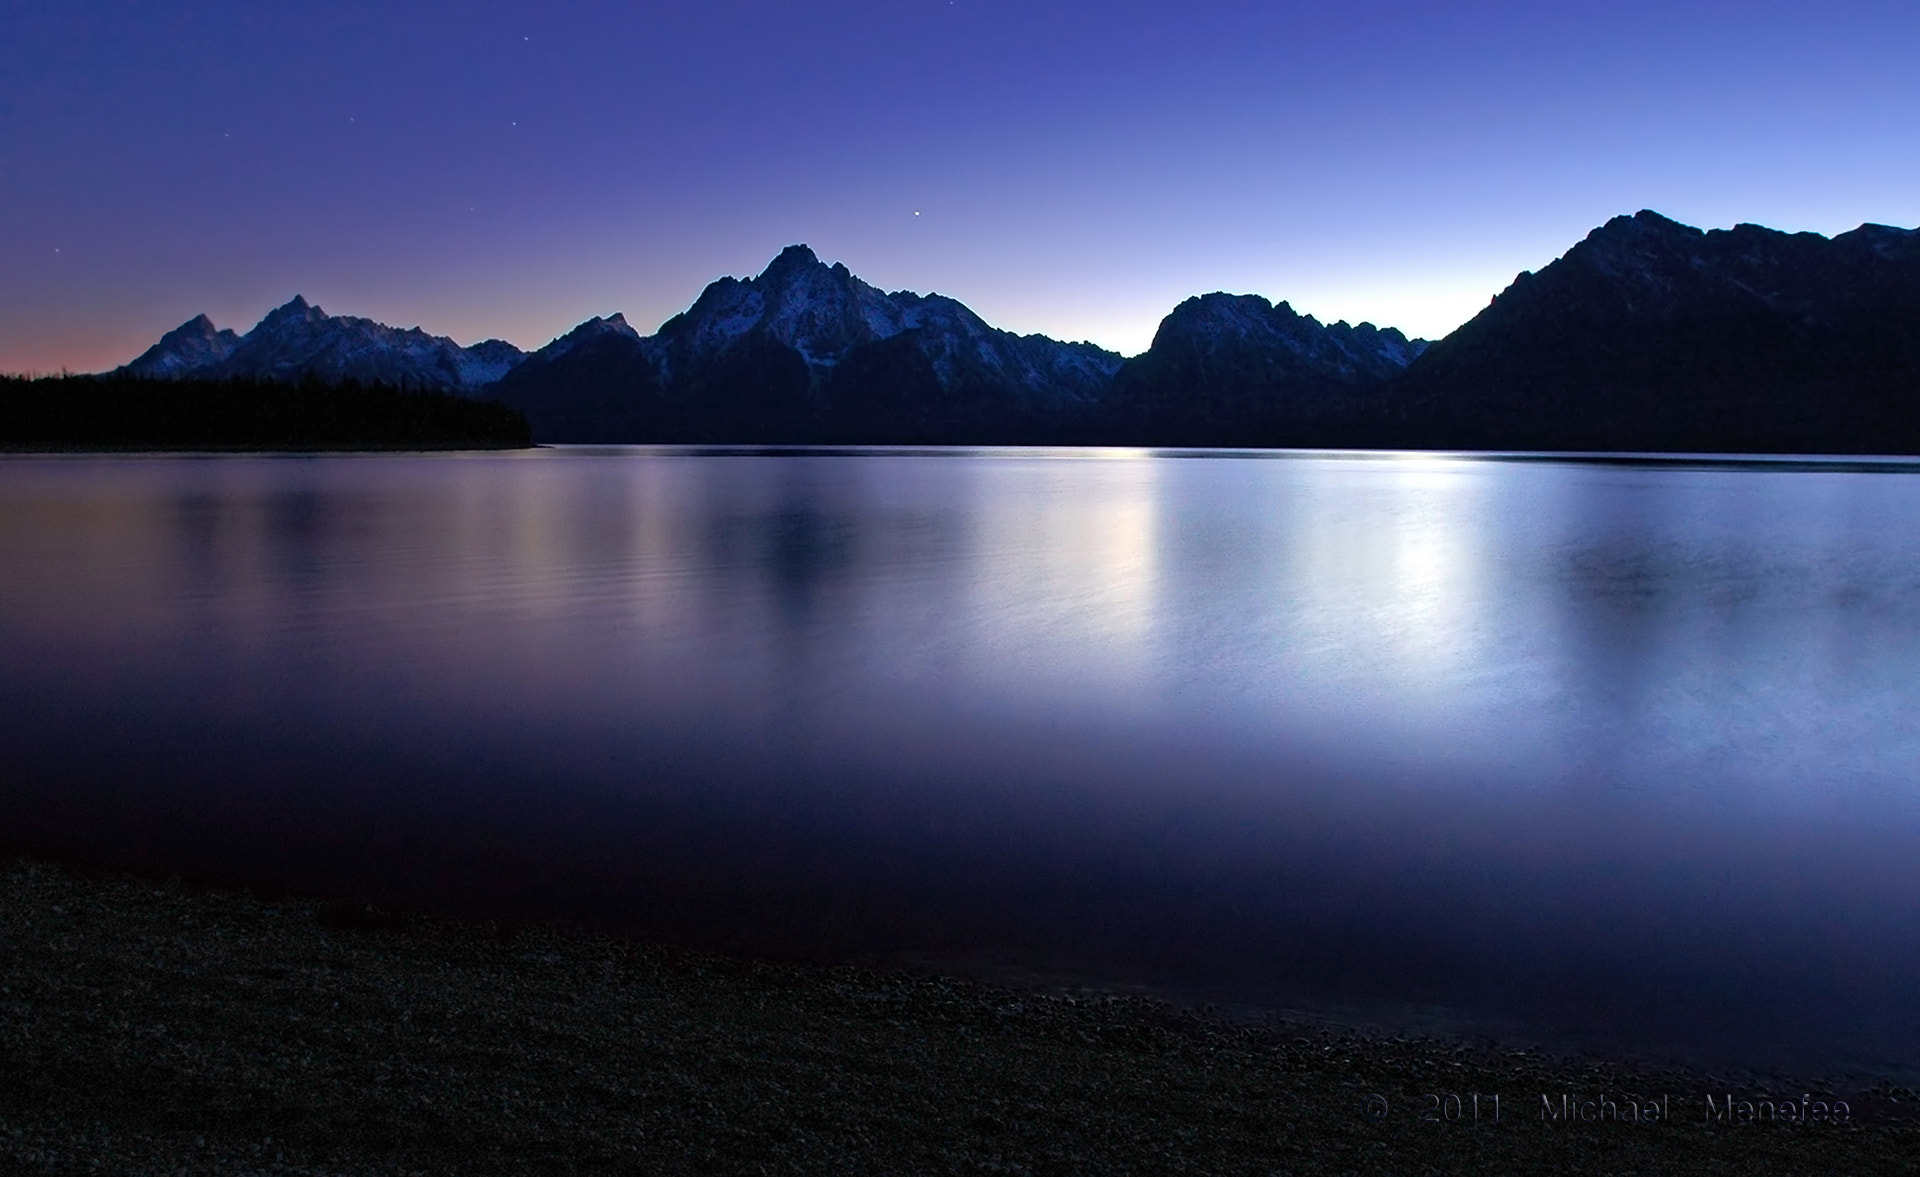 Photograph Last Twilight Jackson Lake, Grand Teton National Park, Wyoming by Michael Menefee on 500px